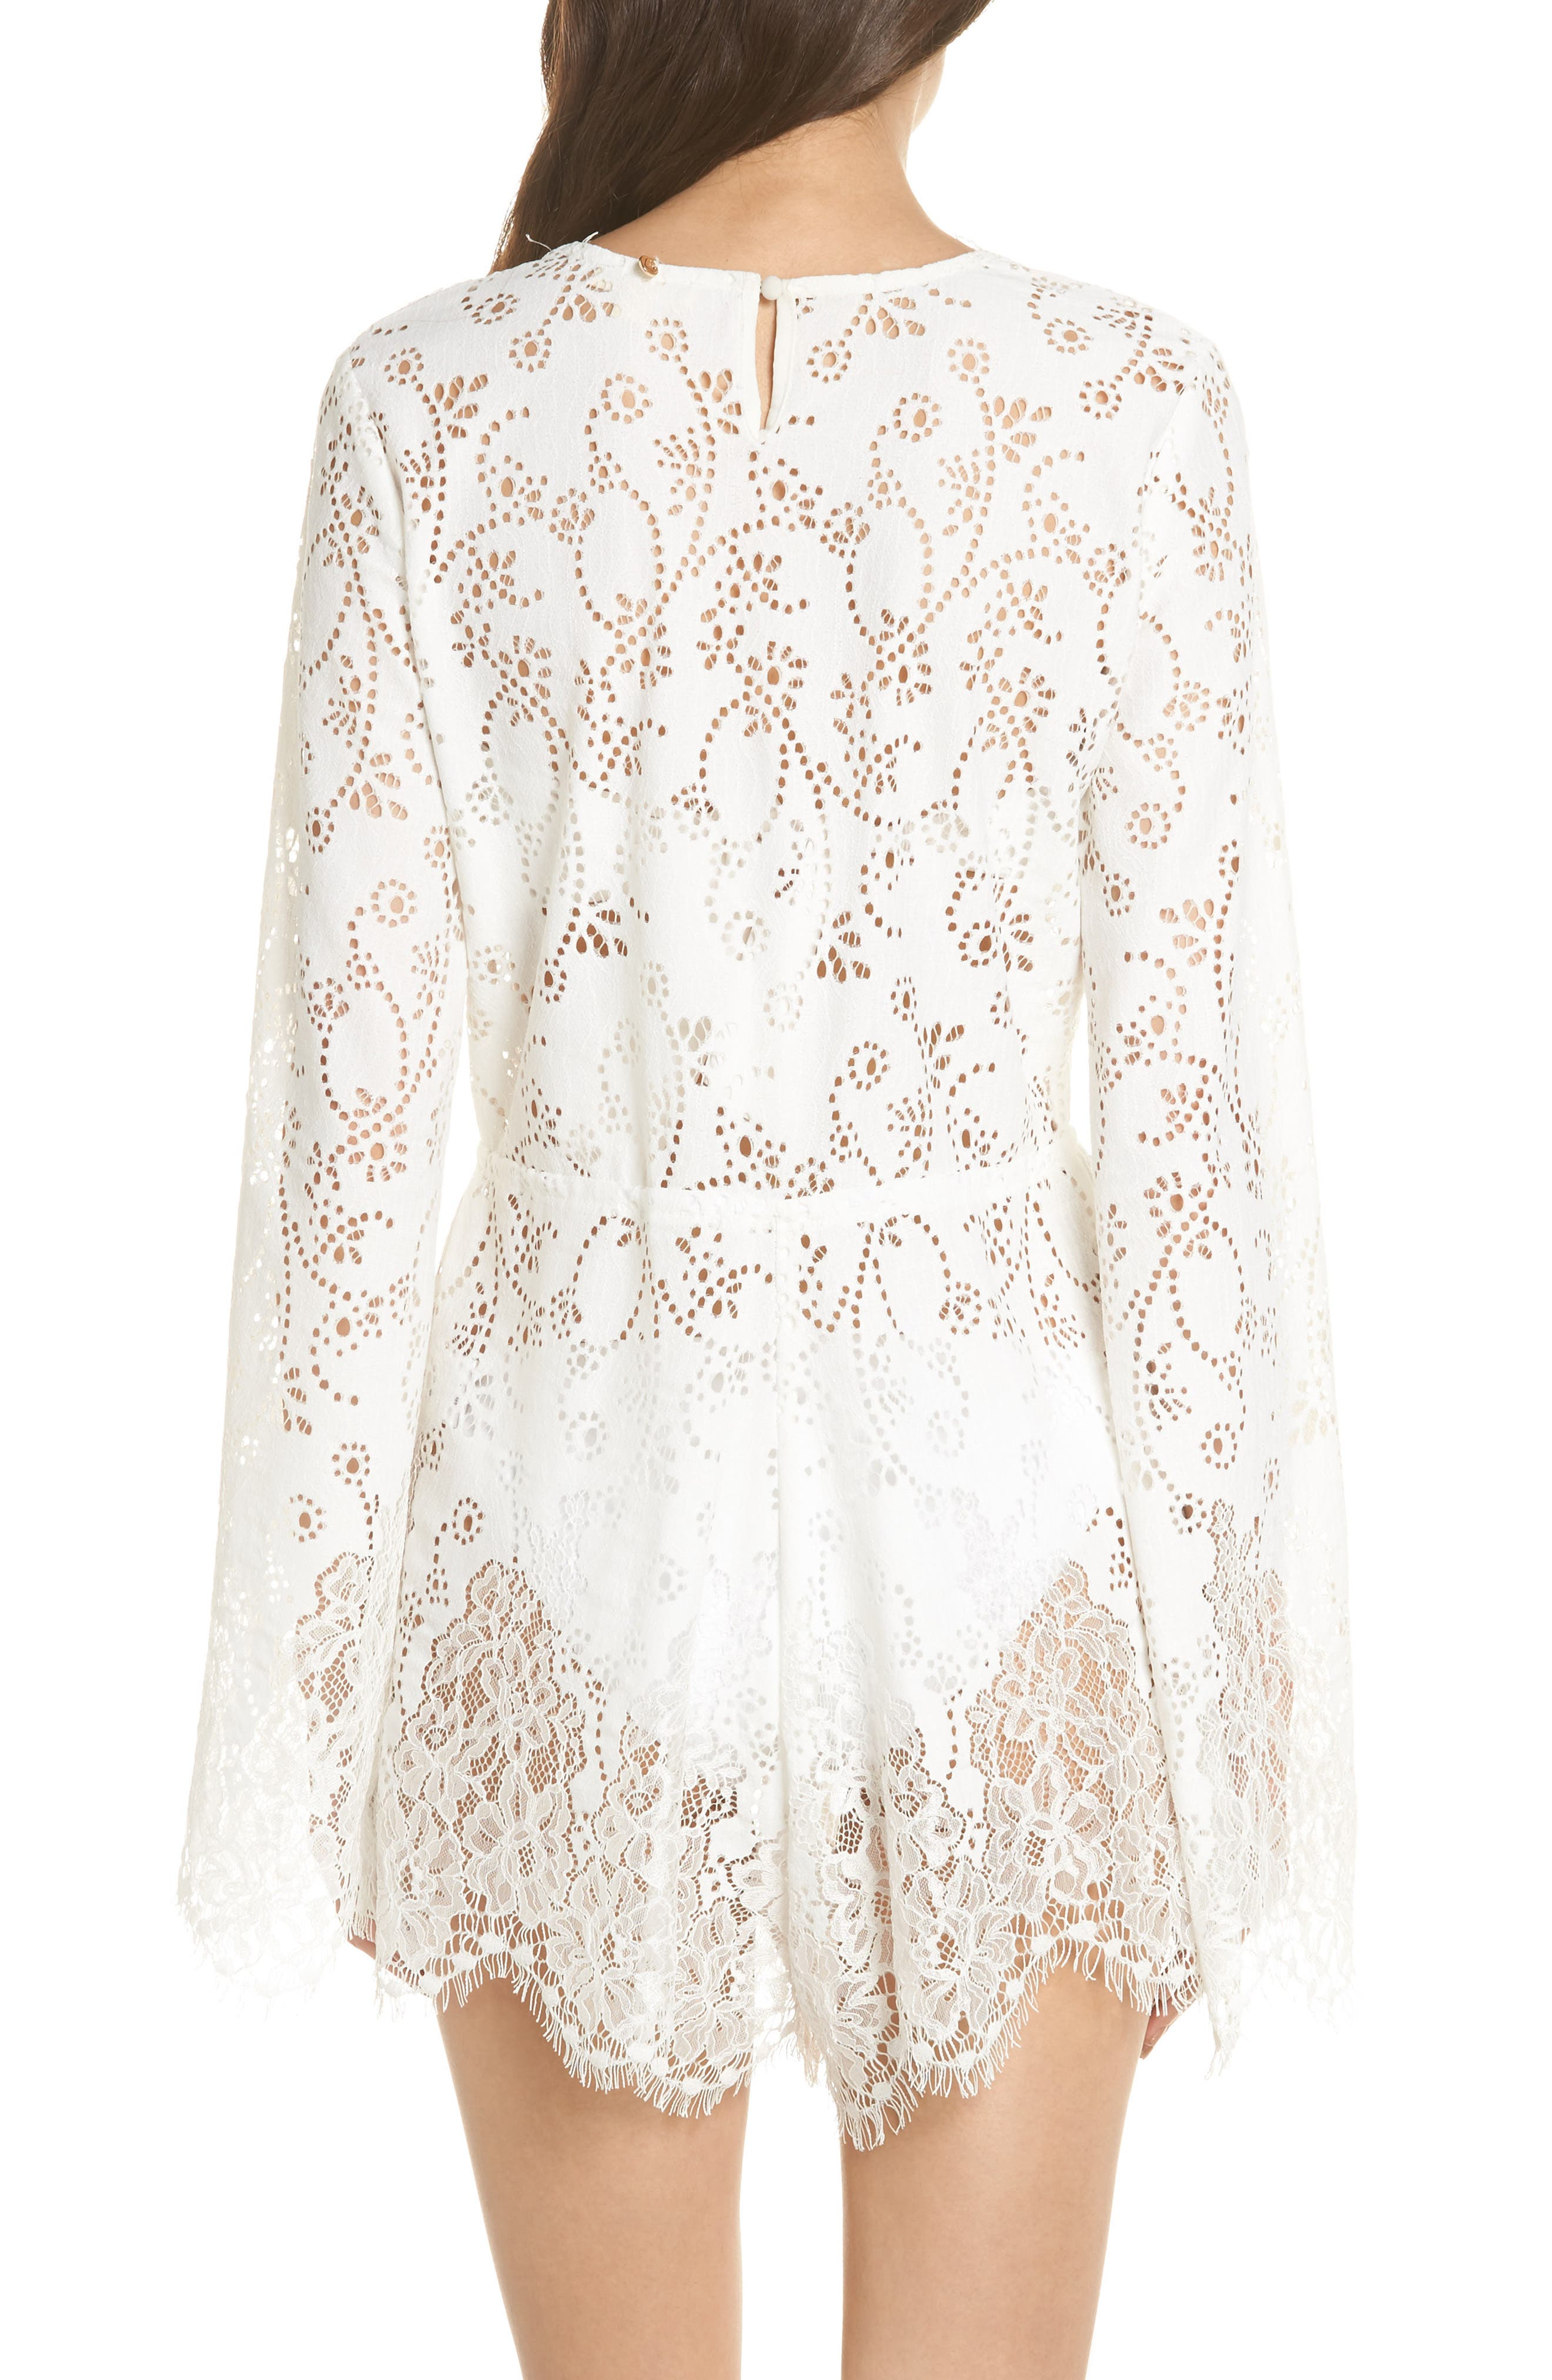 Olympia Lace Cover-Up Romper,                             Alternate thumbnail 4, color,